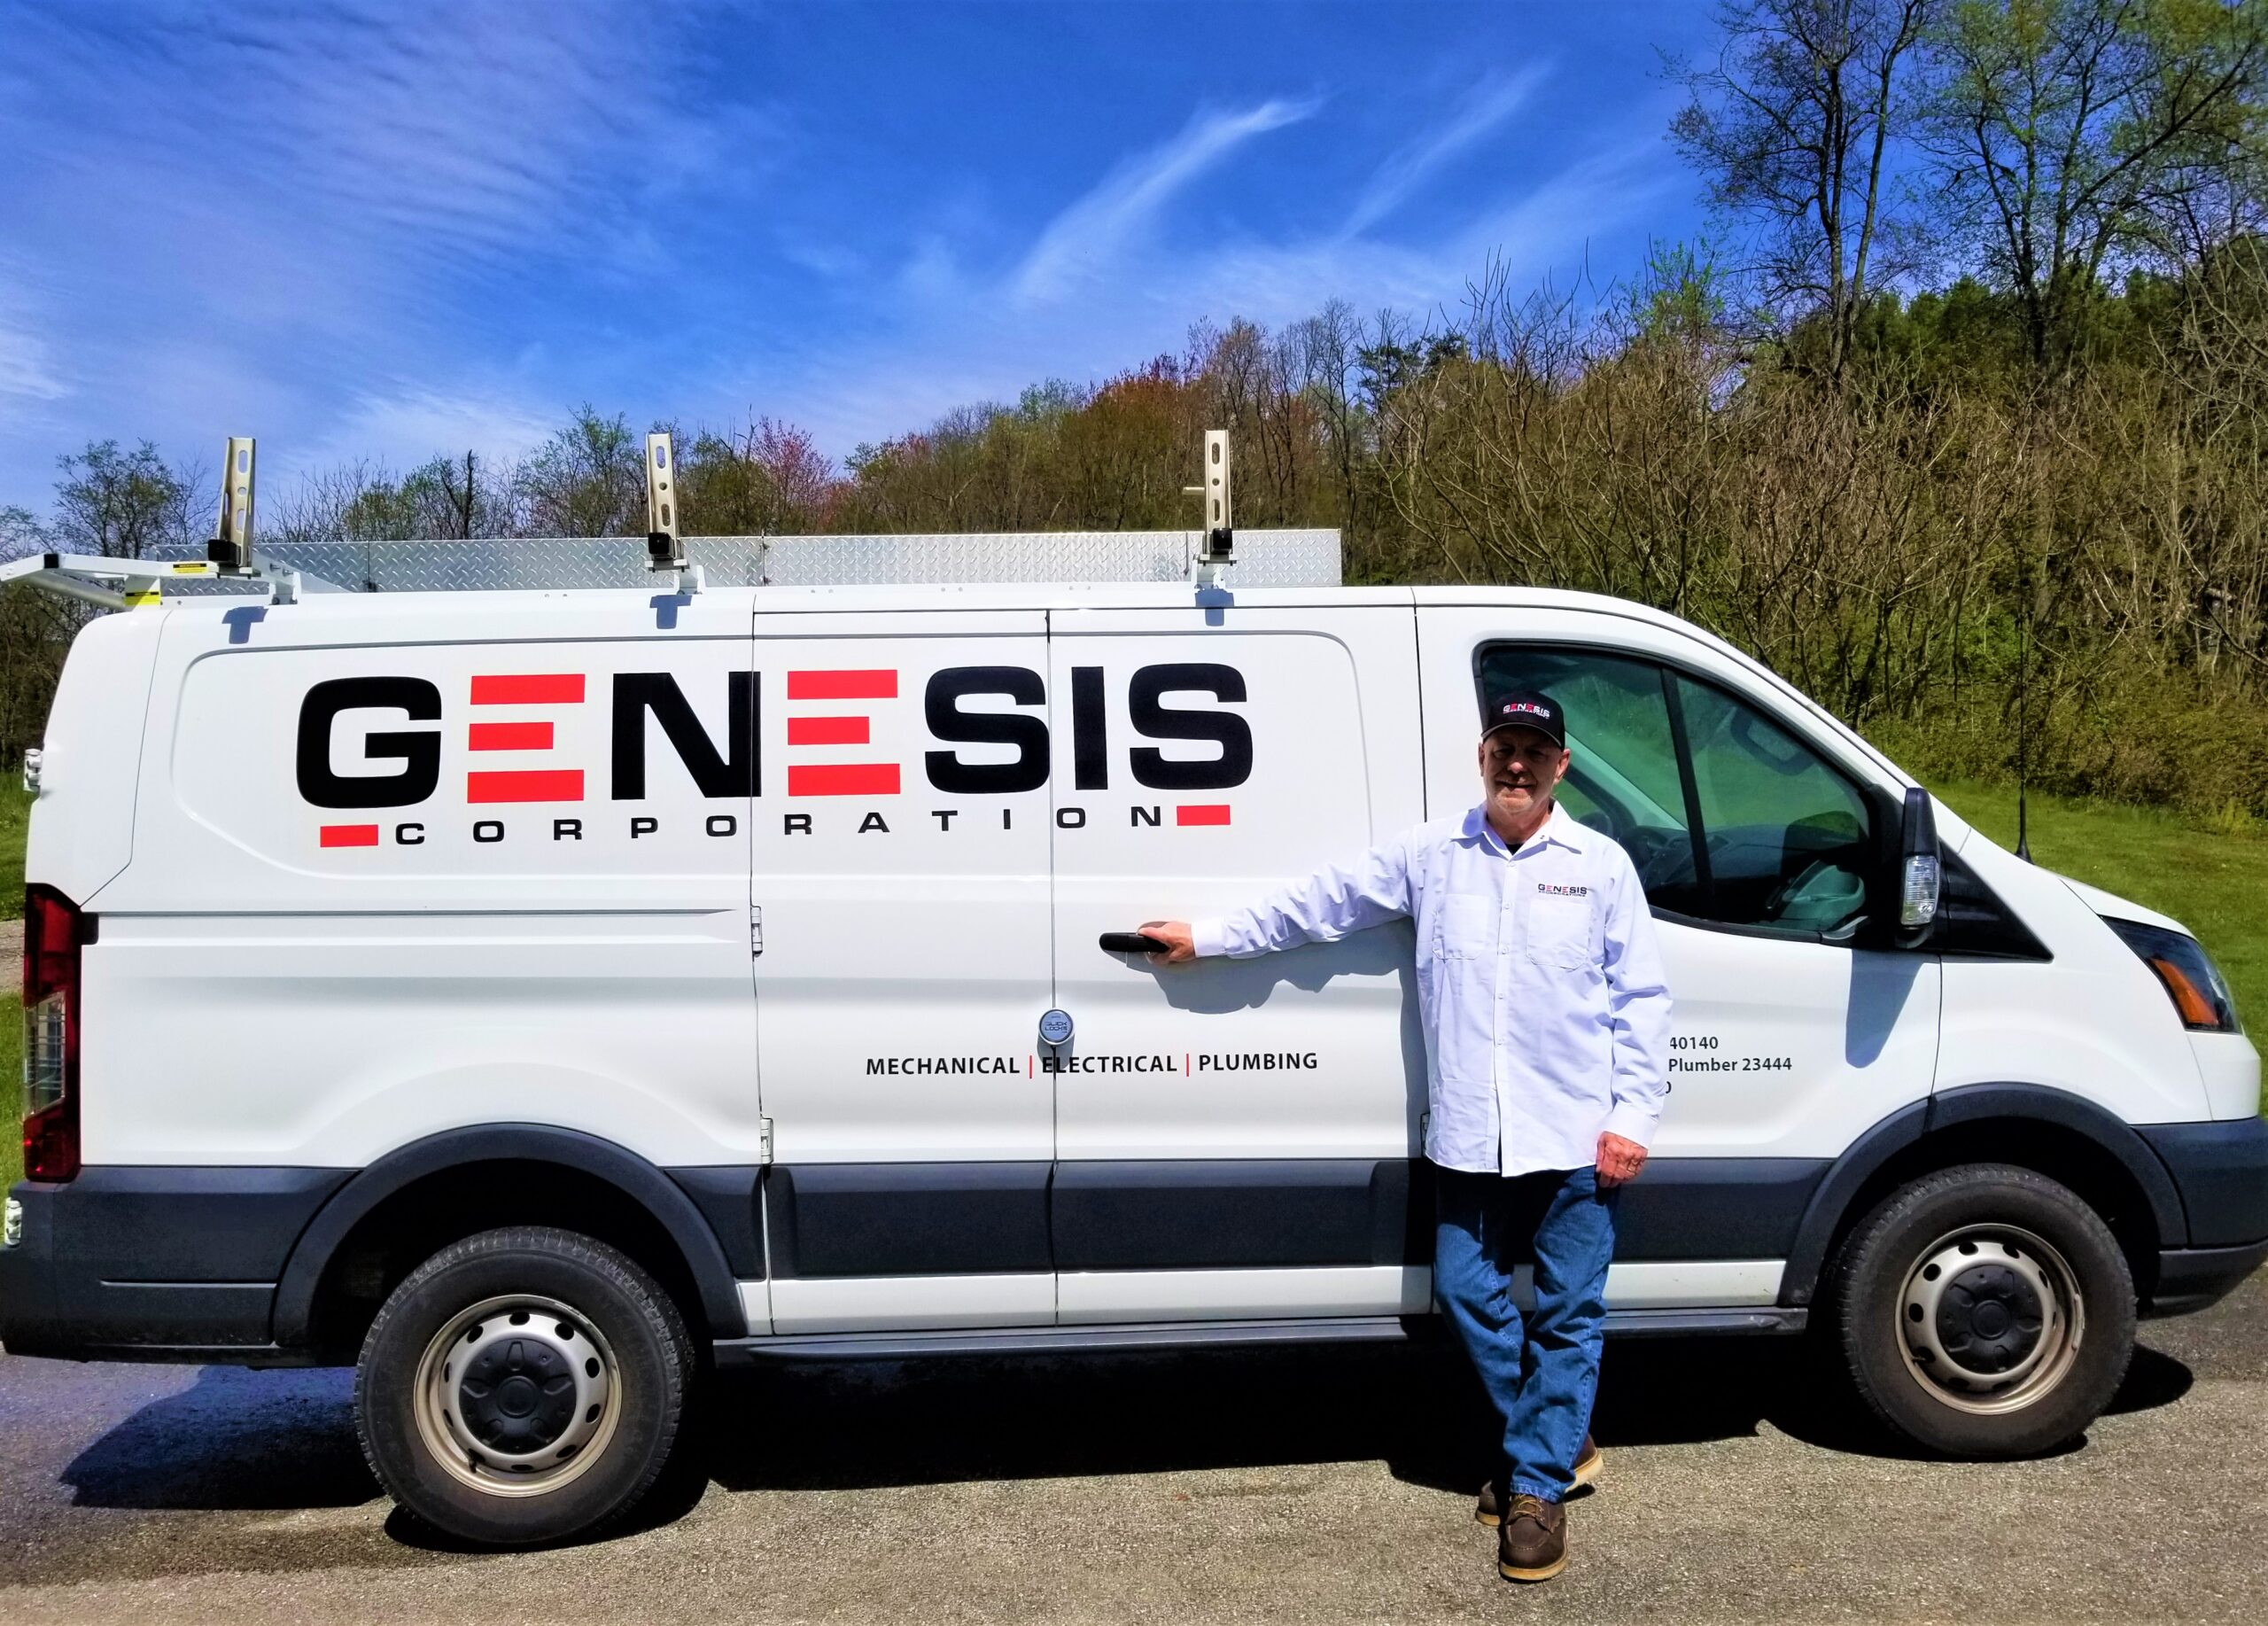 Genesis Corporation welcomes Senior HVACR Technician Jim Ford